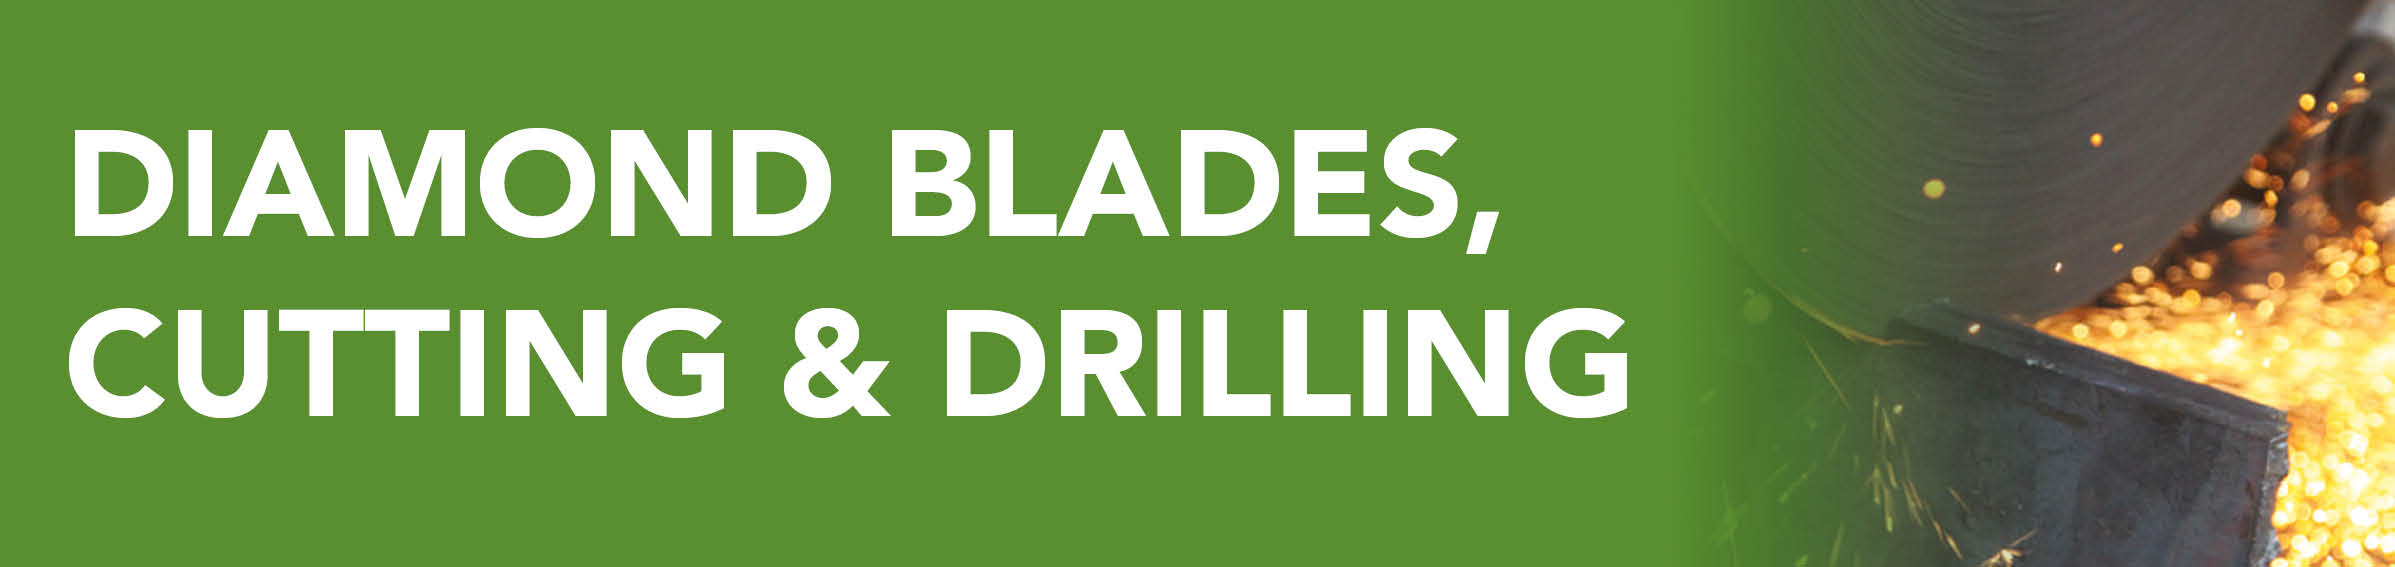 Diamond Blades, Cutting & Drilling